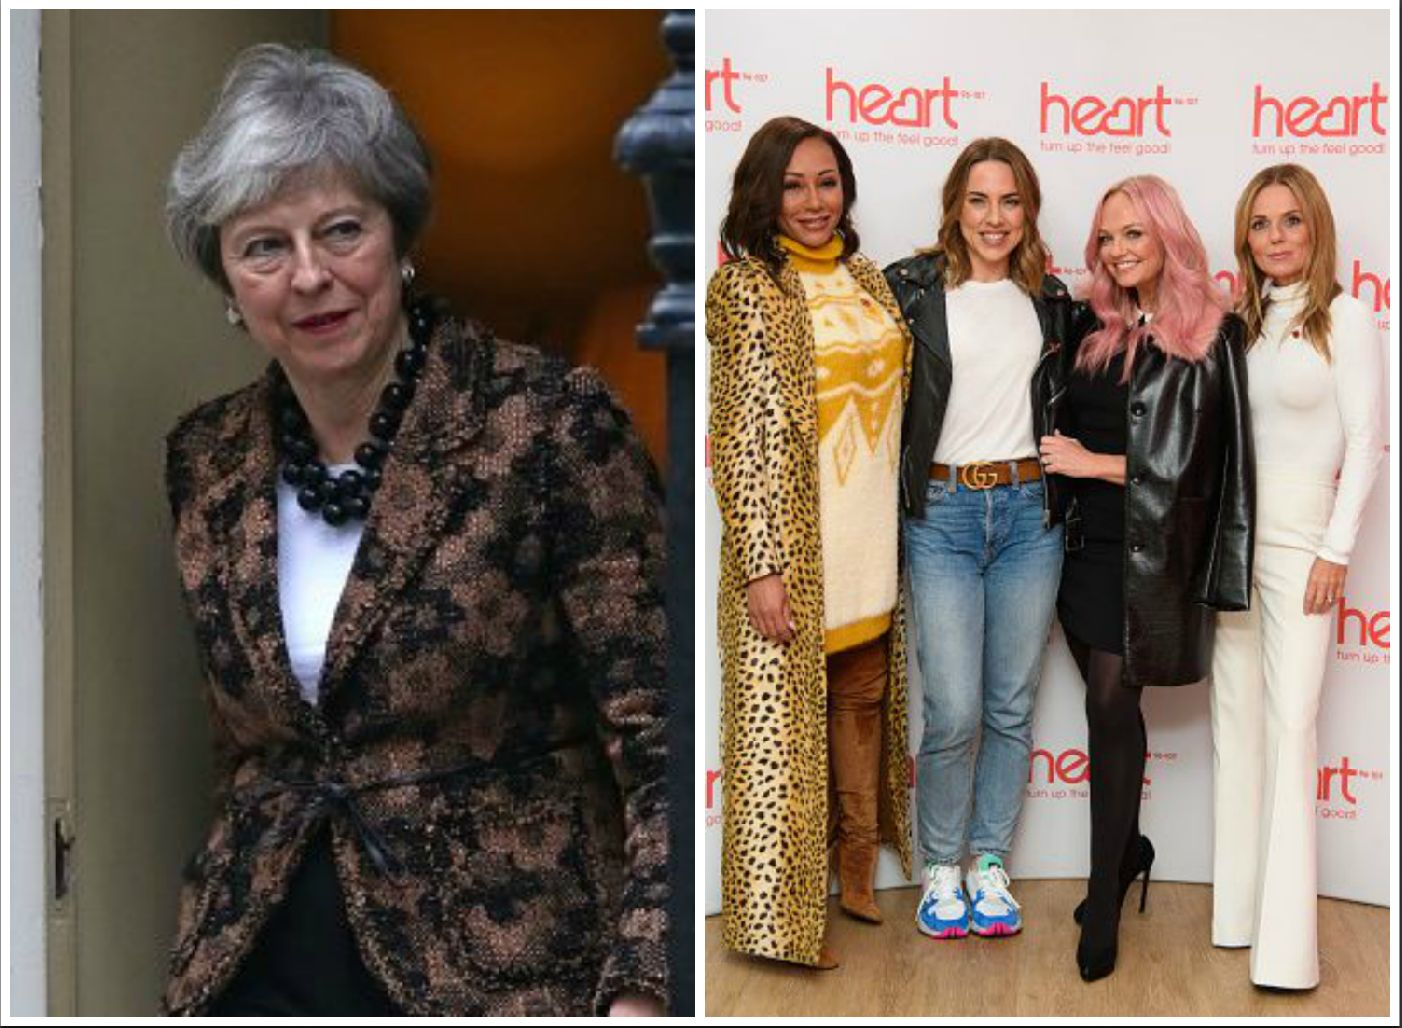 European Union Slams Britain's Brexit Plans With Spice Girls